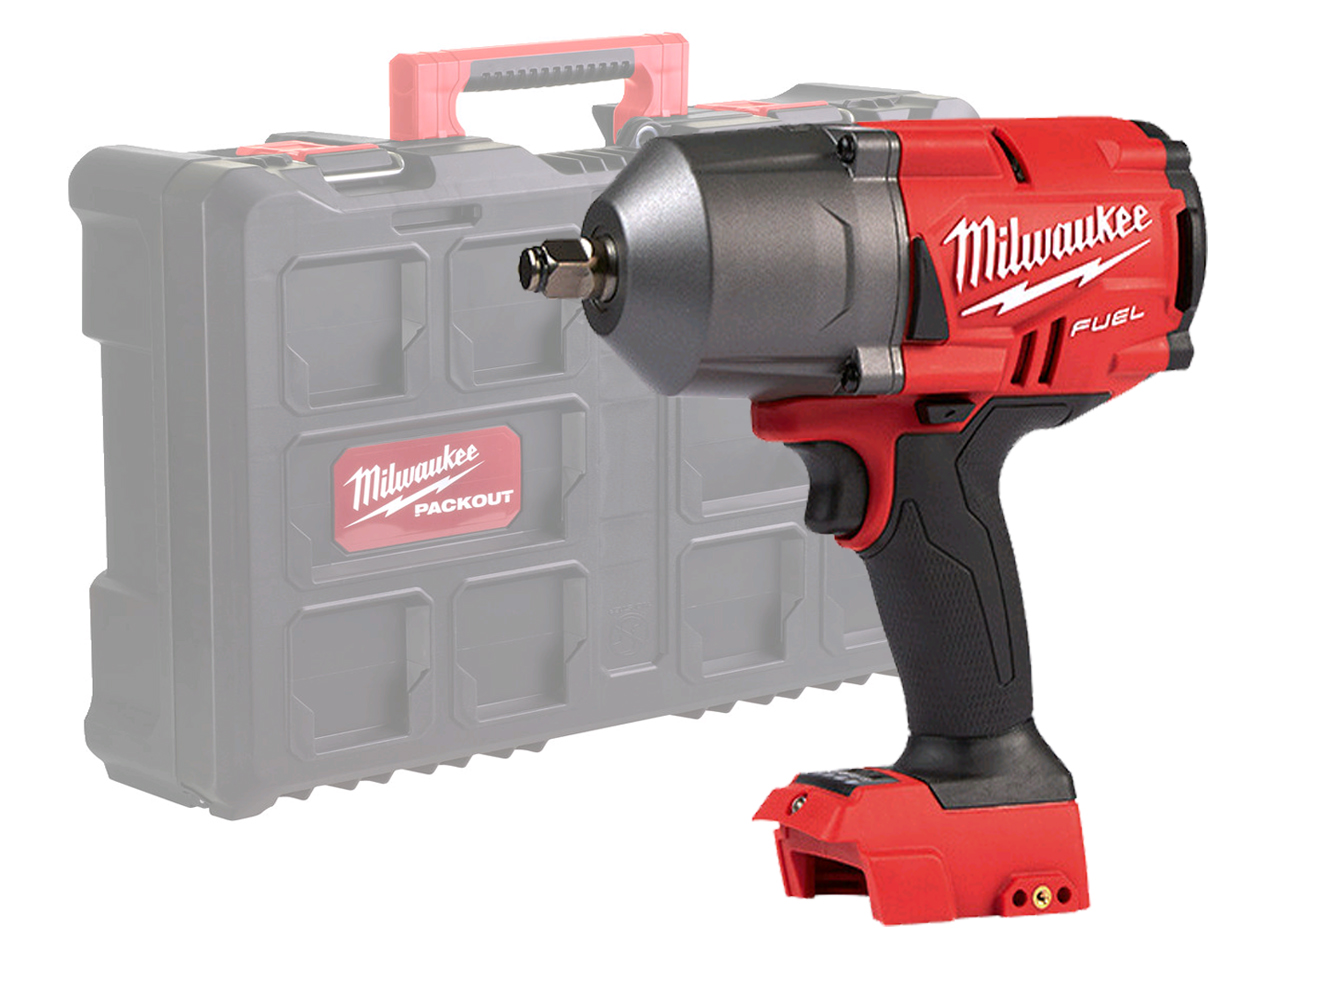 Milwaukee M18FHIWF12 18V Fuel Brushless 1/2In High Torque Wrench - Body Only